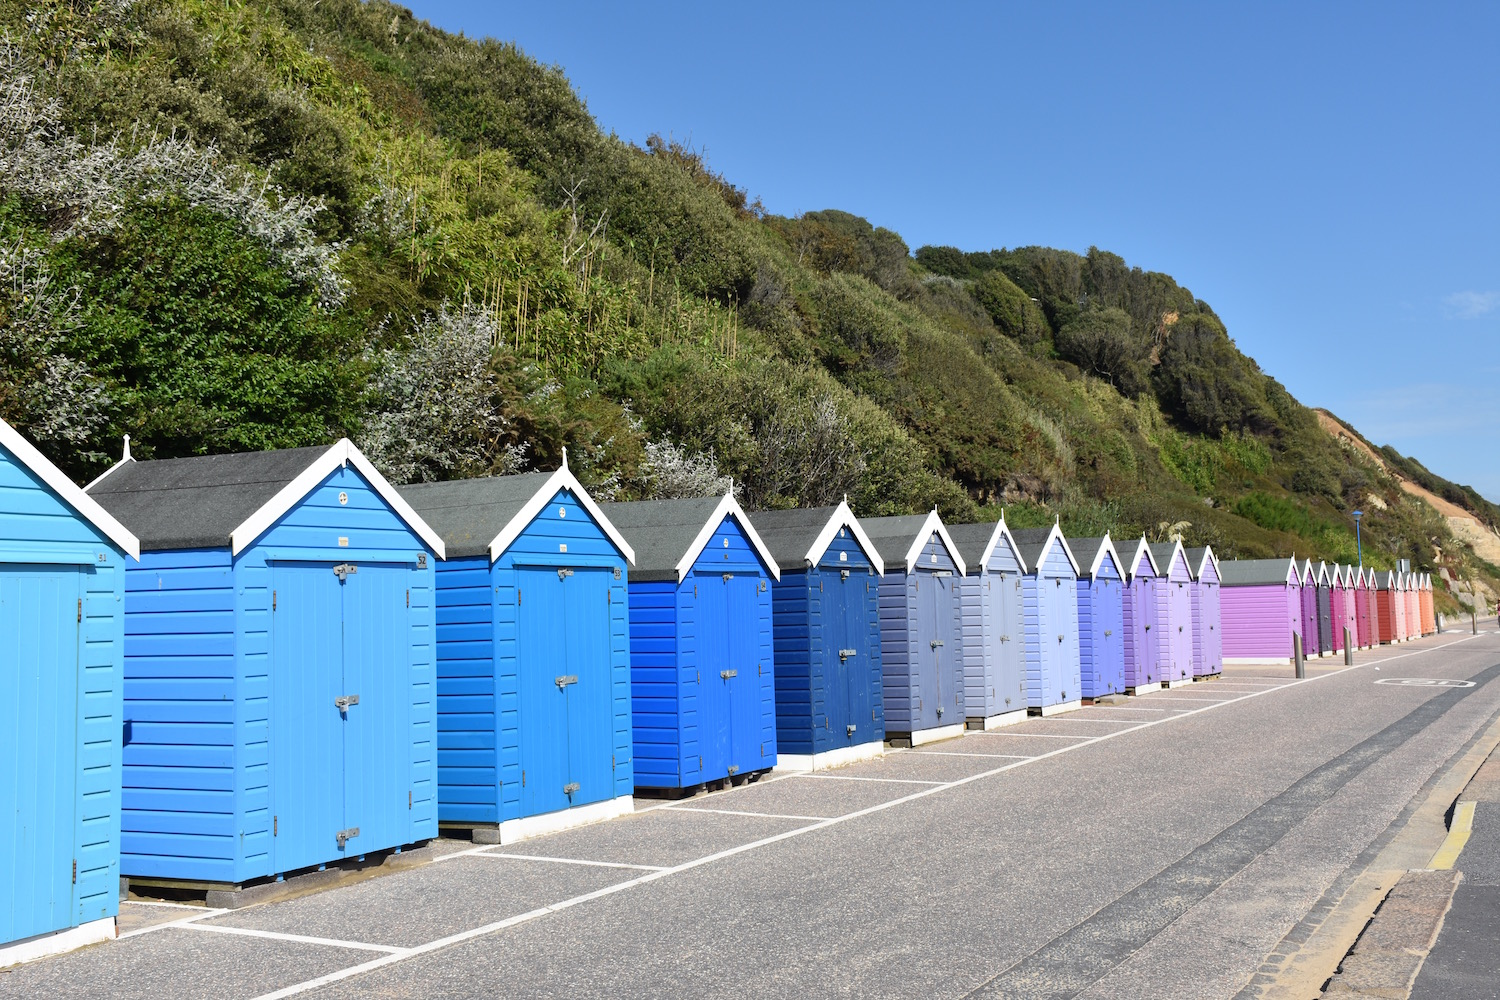 Finding The Colourful Bournemouth Beach Huts Becky Van Dijk